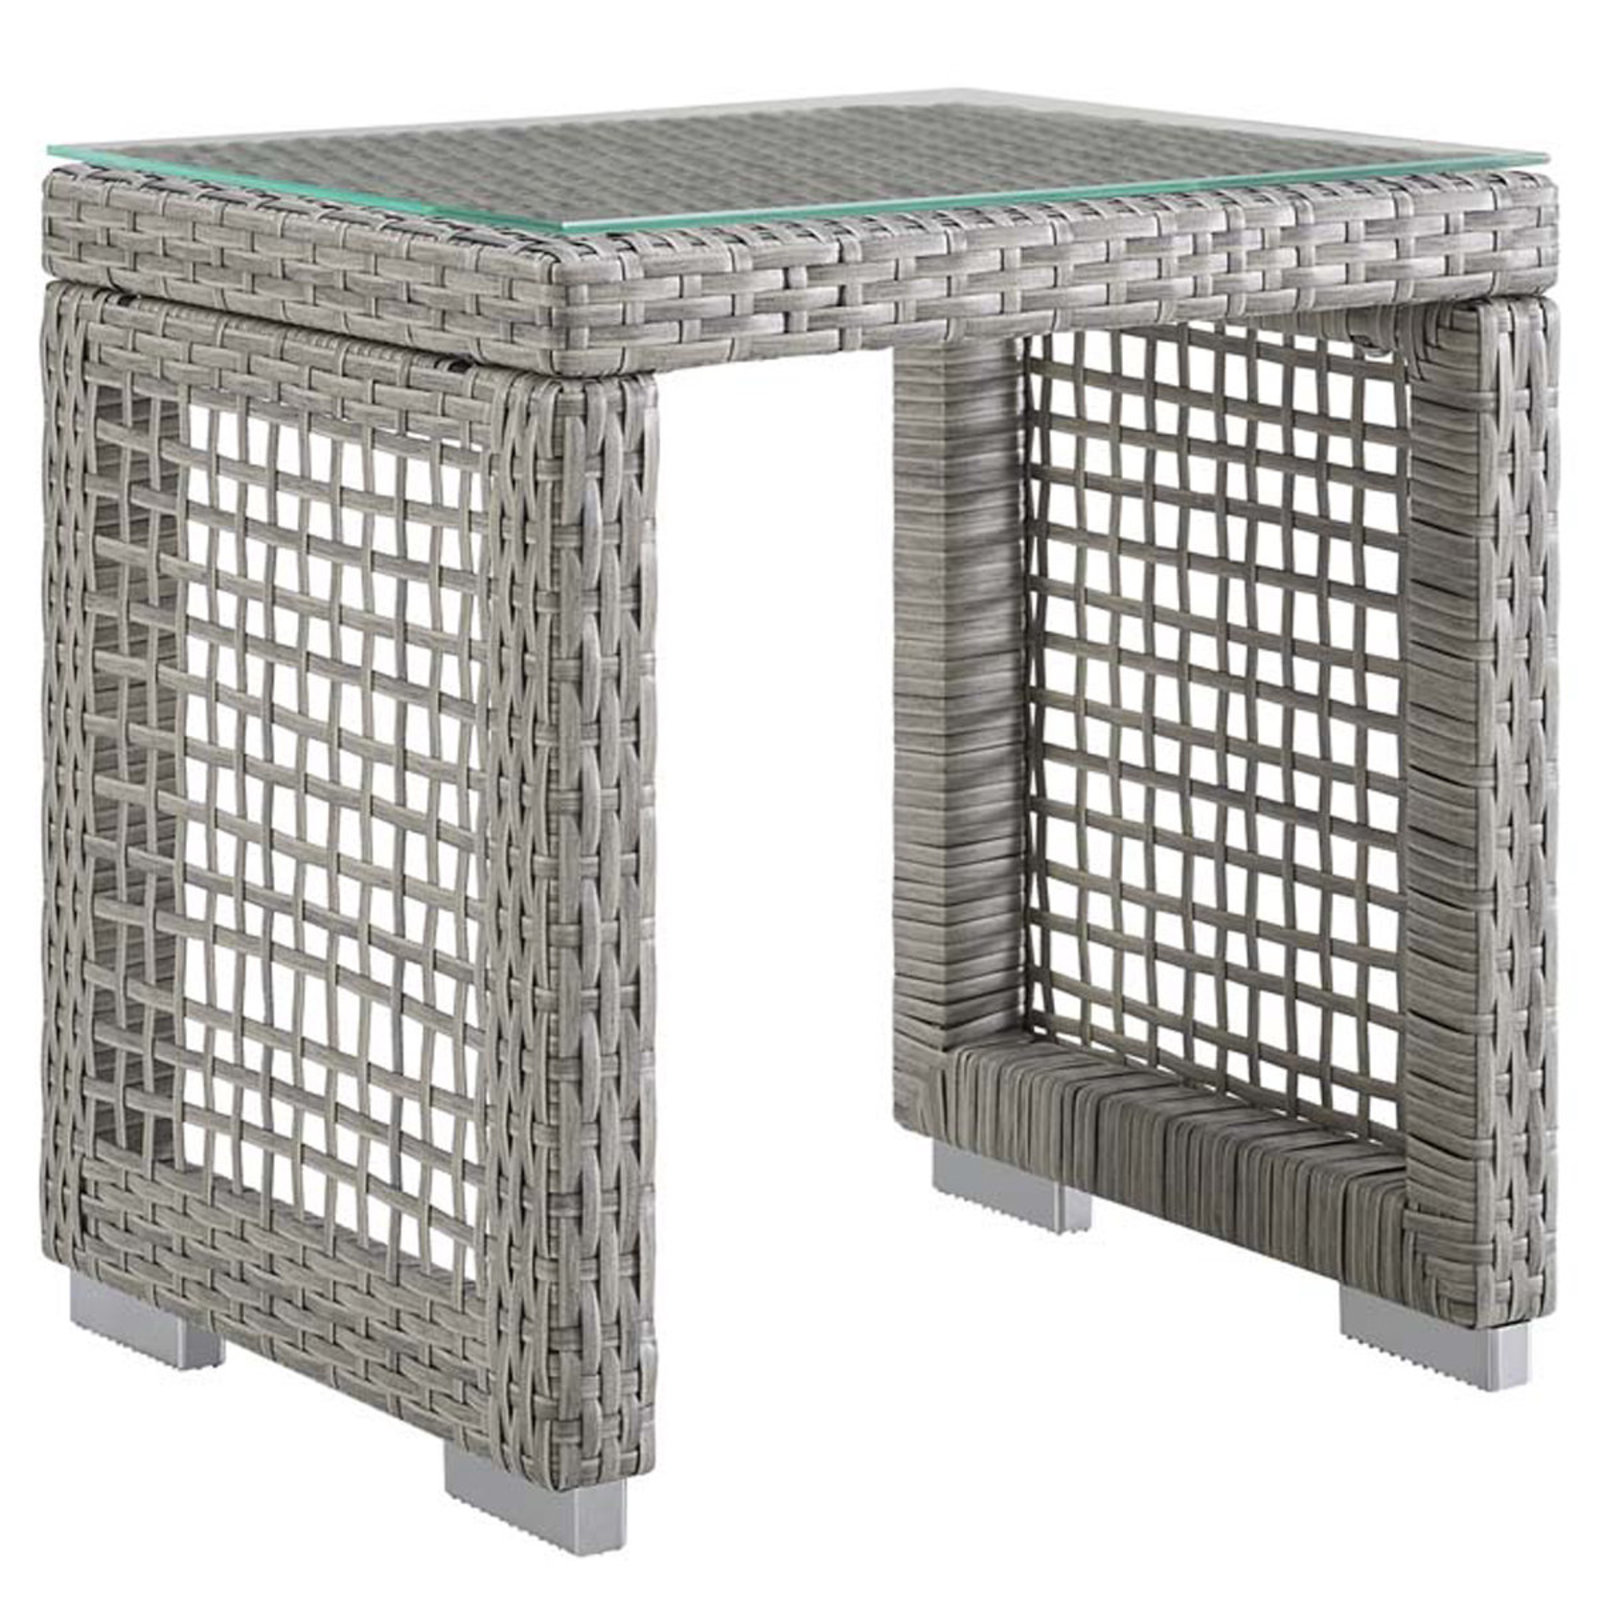 modern open weave outdoor side table shades light gray with bbq built accent narrow ikea garden chairs chrome desk legs breakfast bar and stools round silver mirror french coffee